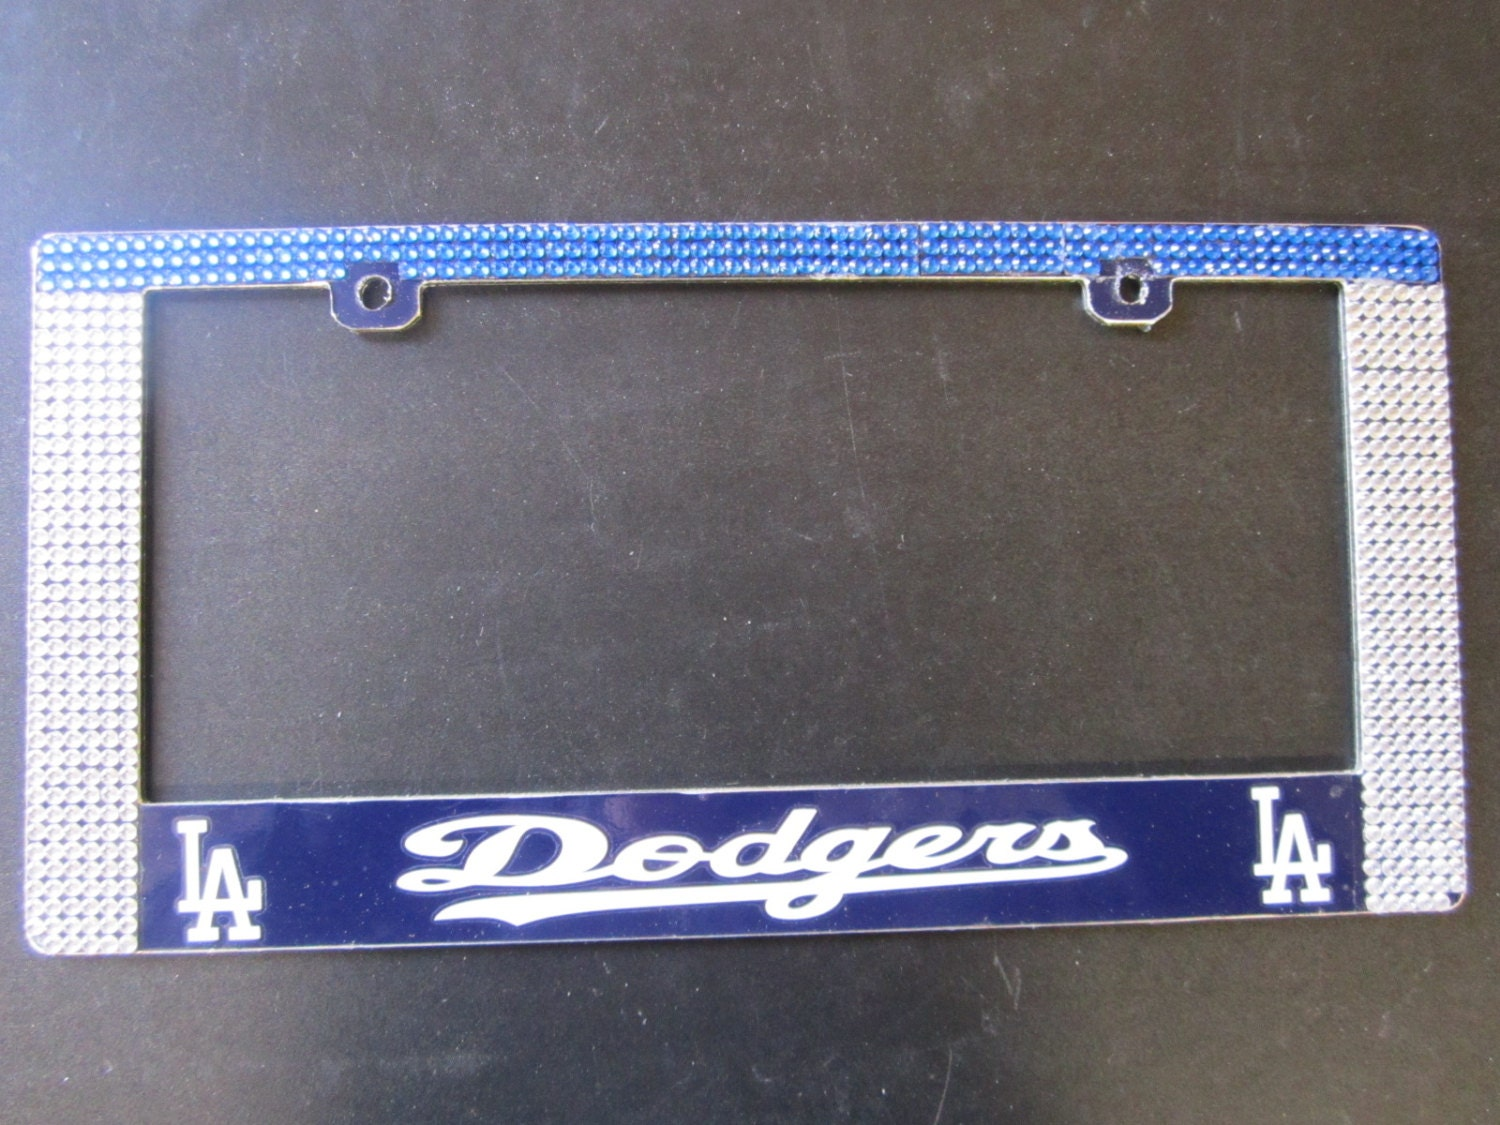 dodgers rhinestone license plate frame dodgers rhinestone license plate frame dodgers rhinestone license plate frame